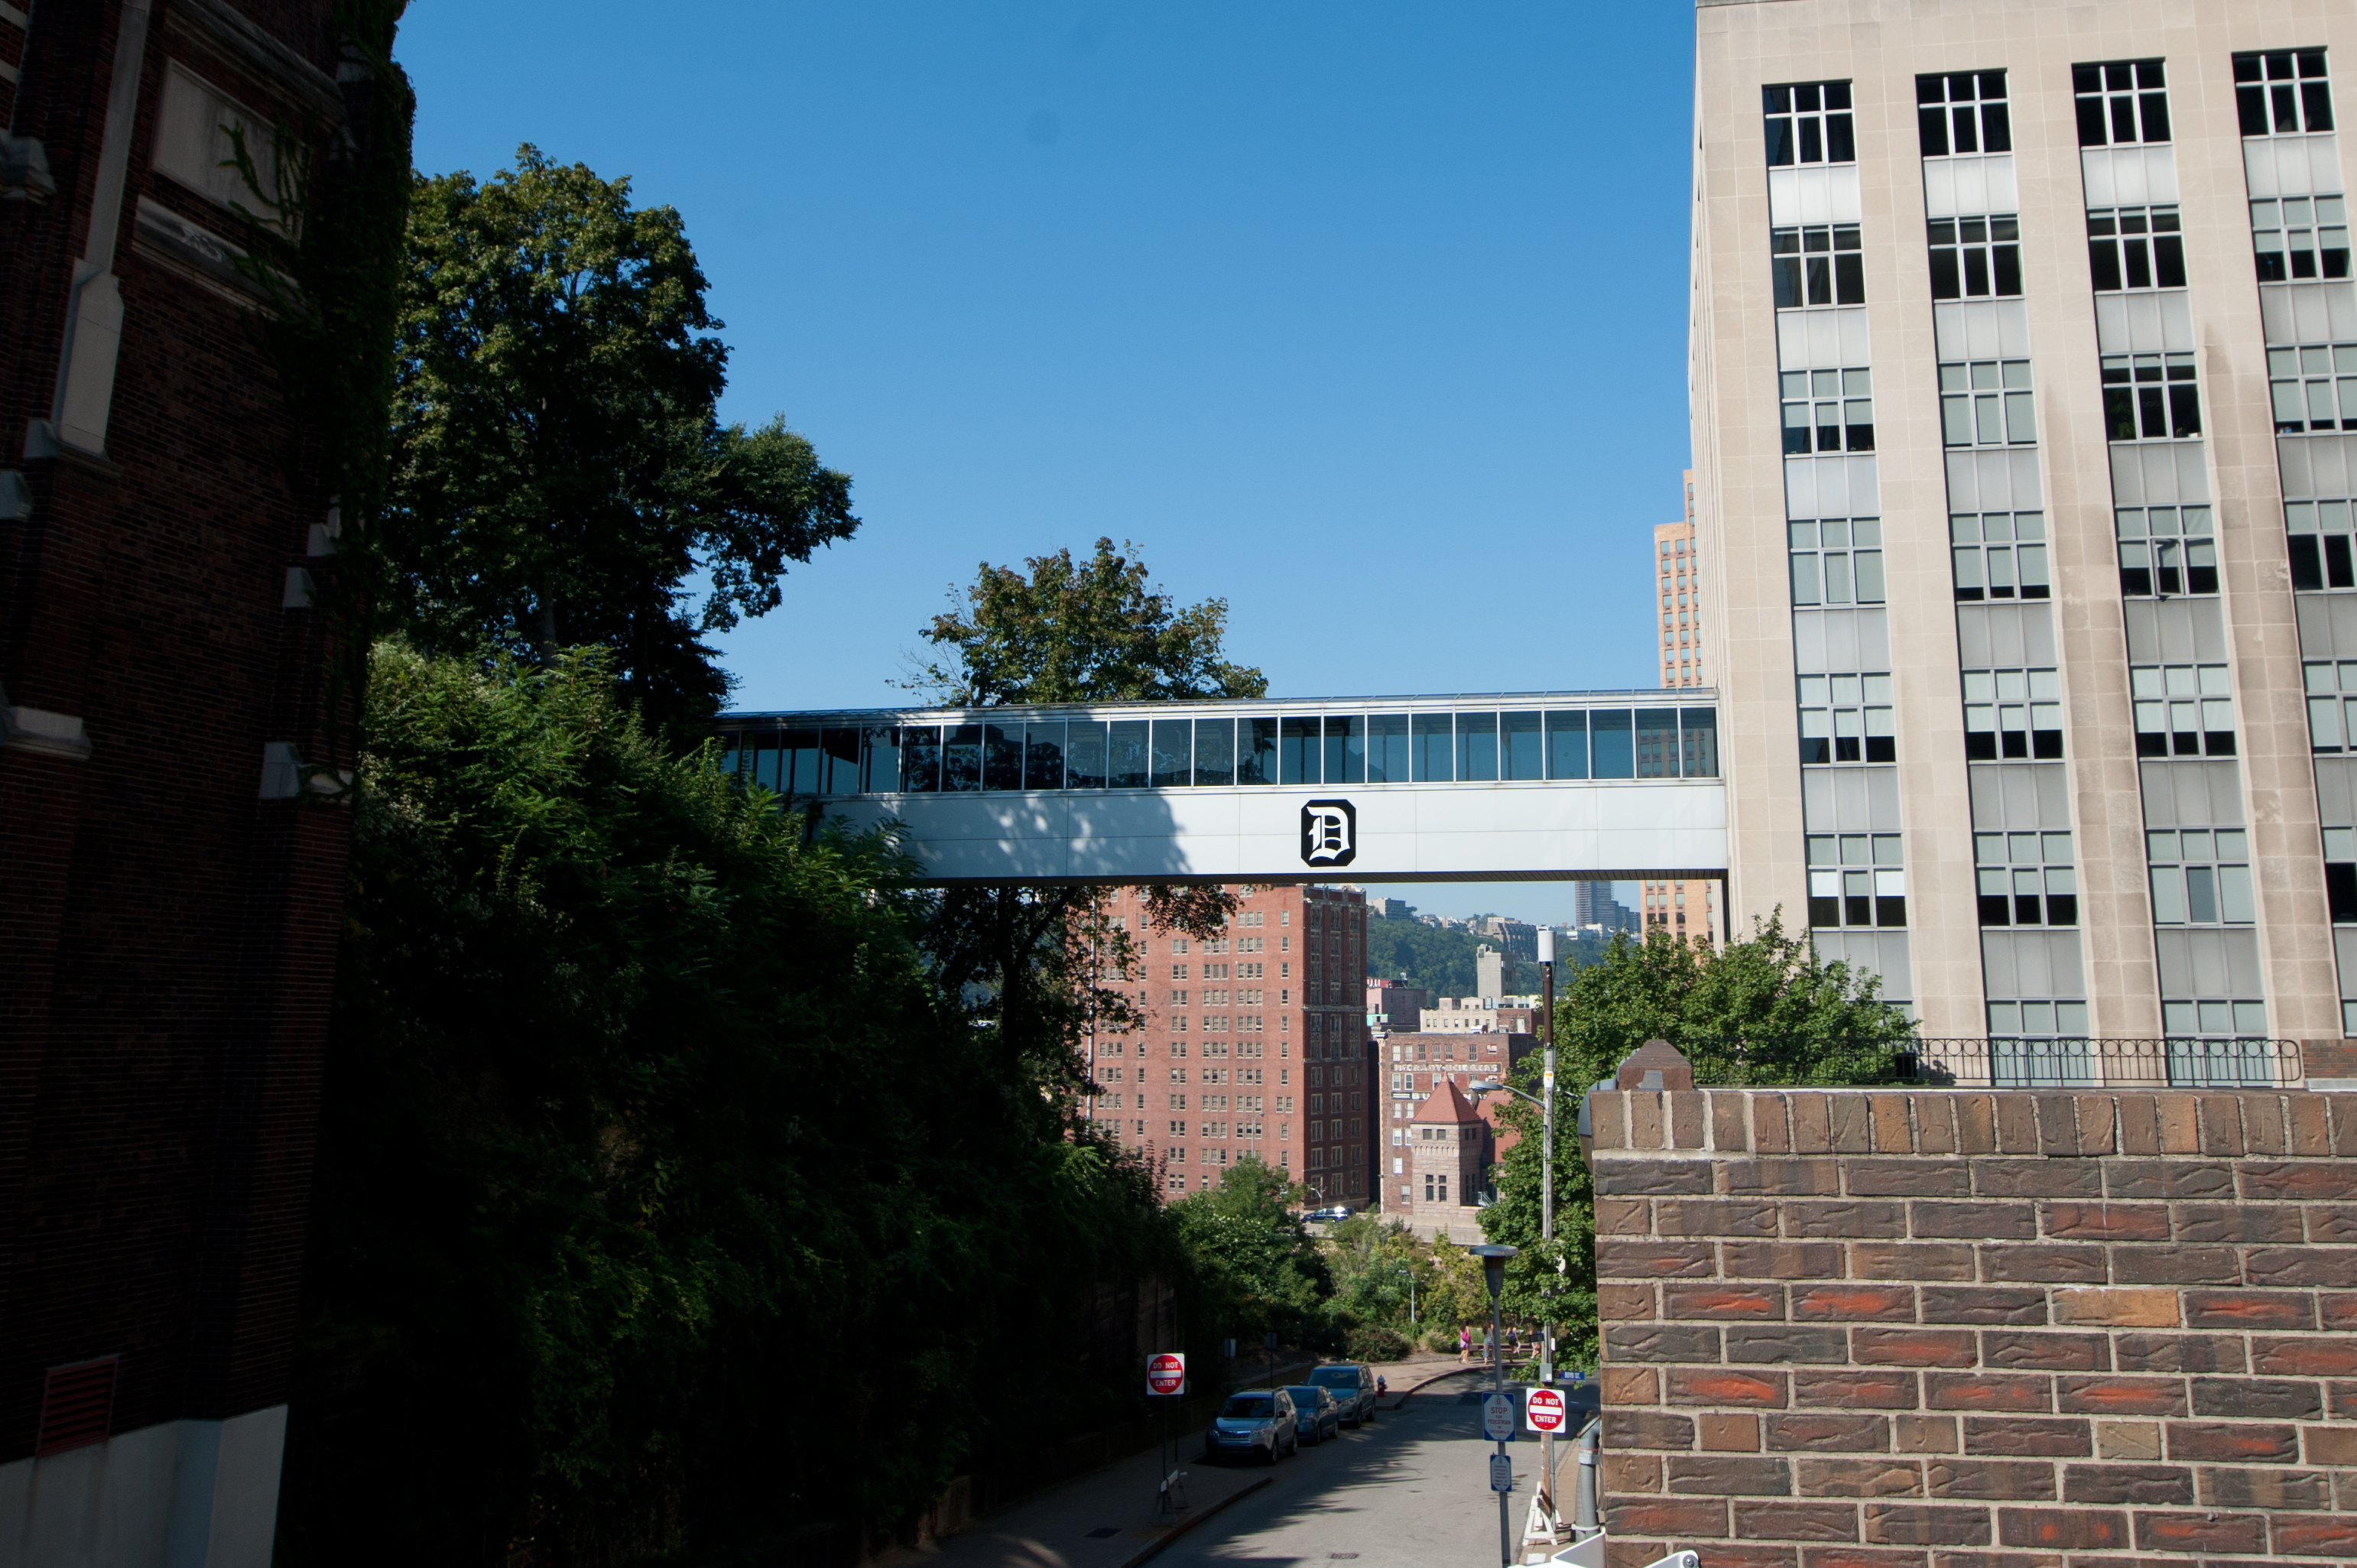 Rockwell Hall Skywalk Street View, Duquesne University